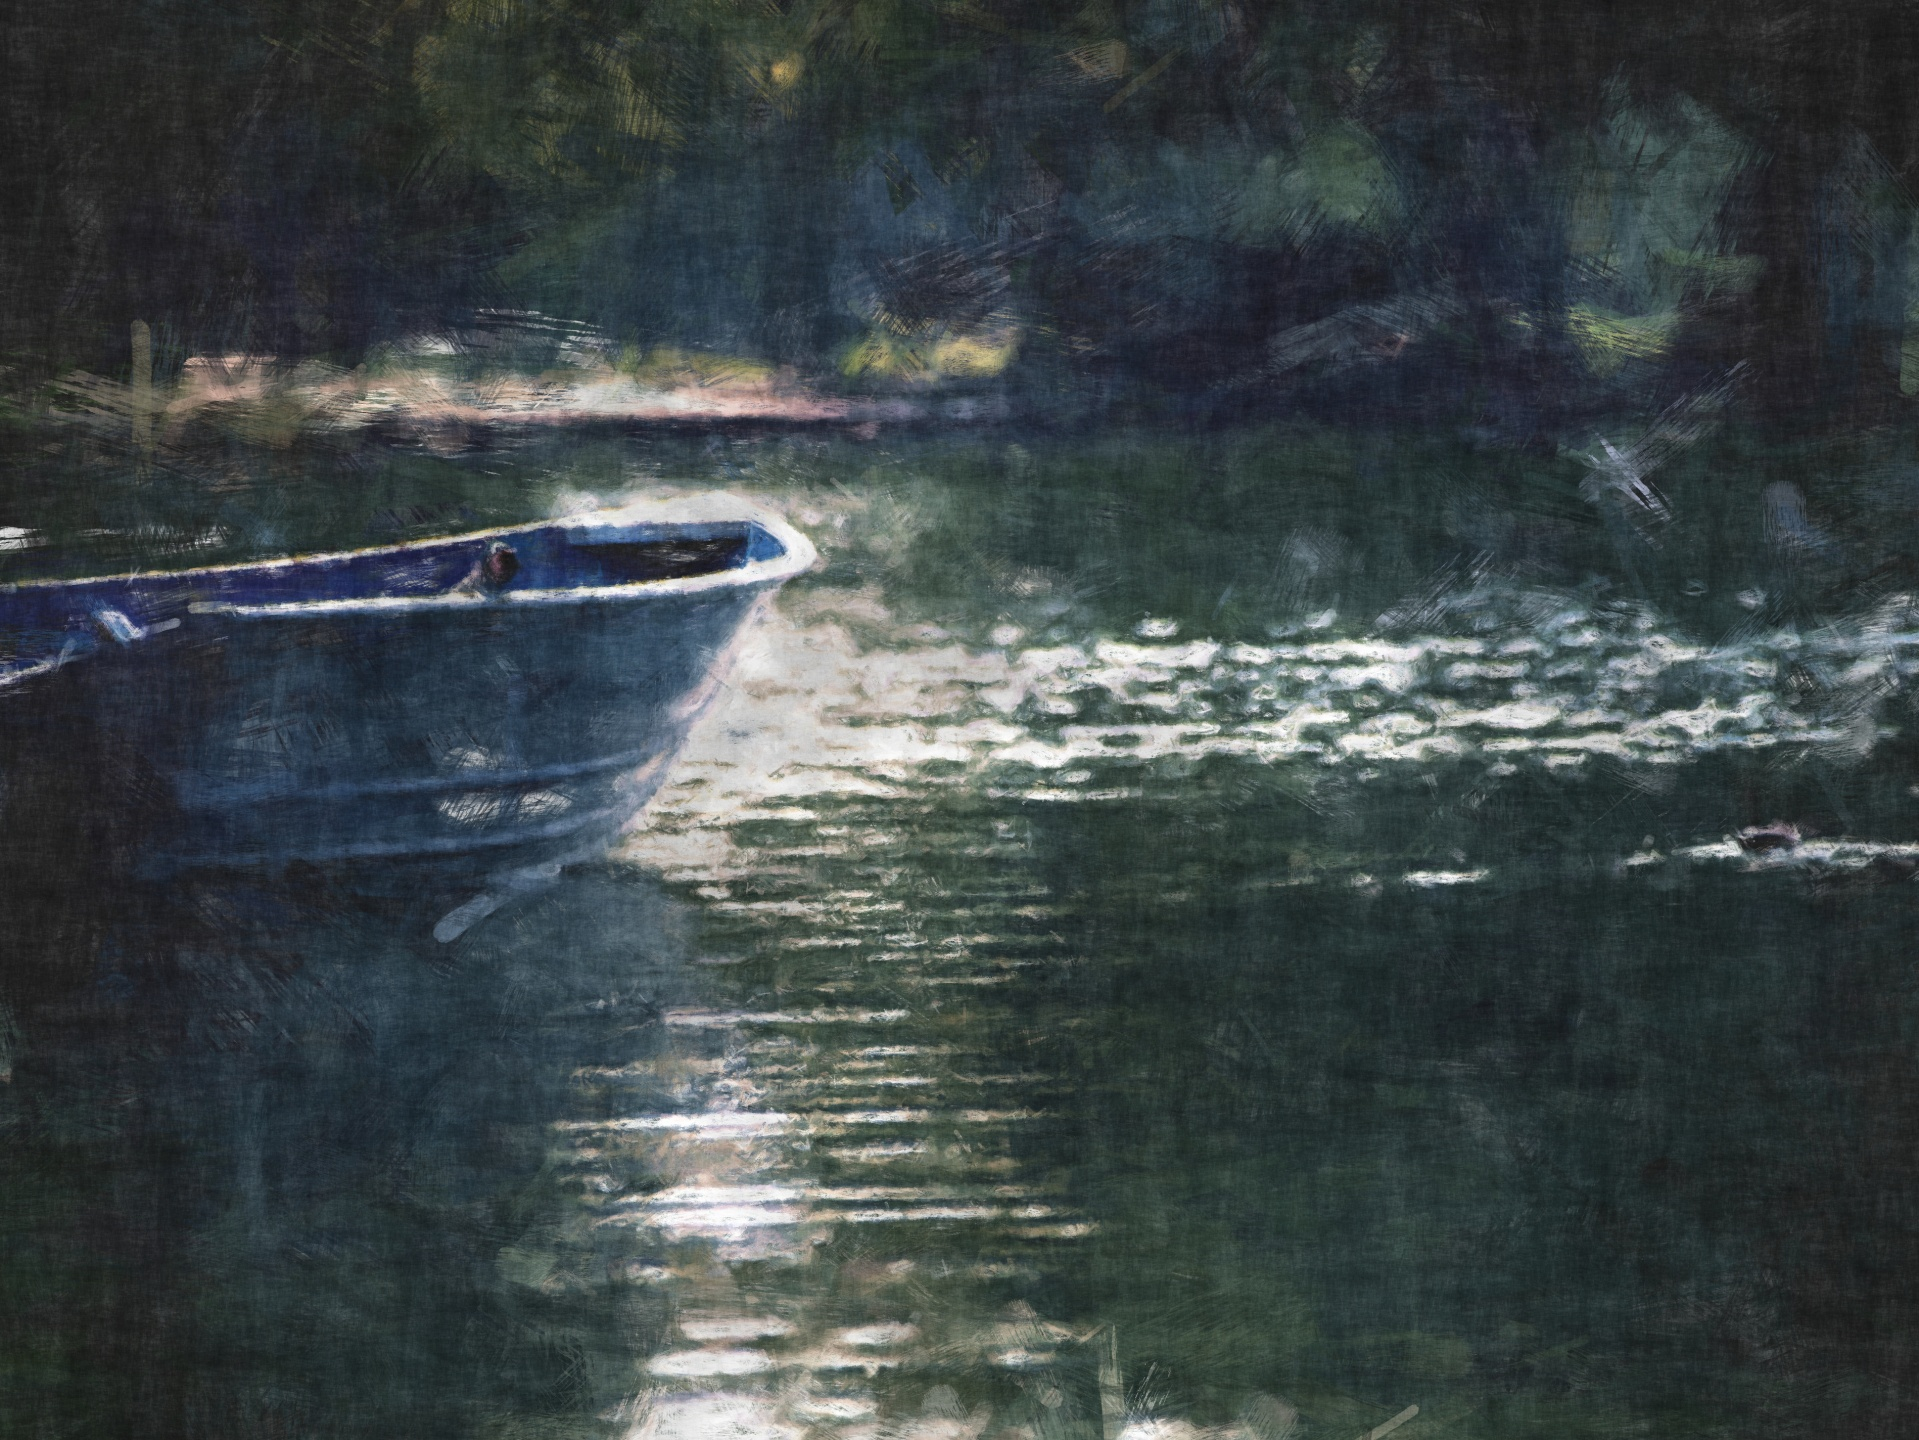 Row Boat Oil Painting from publicdomainpictues